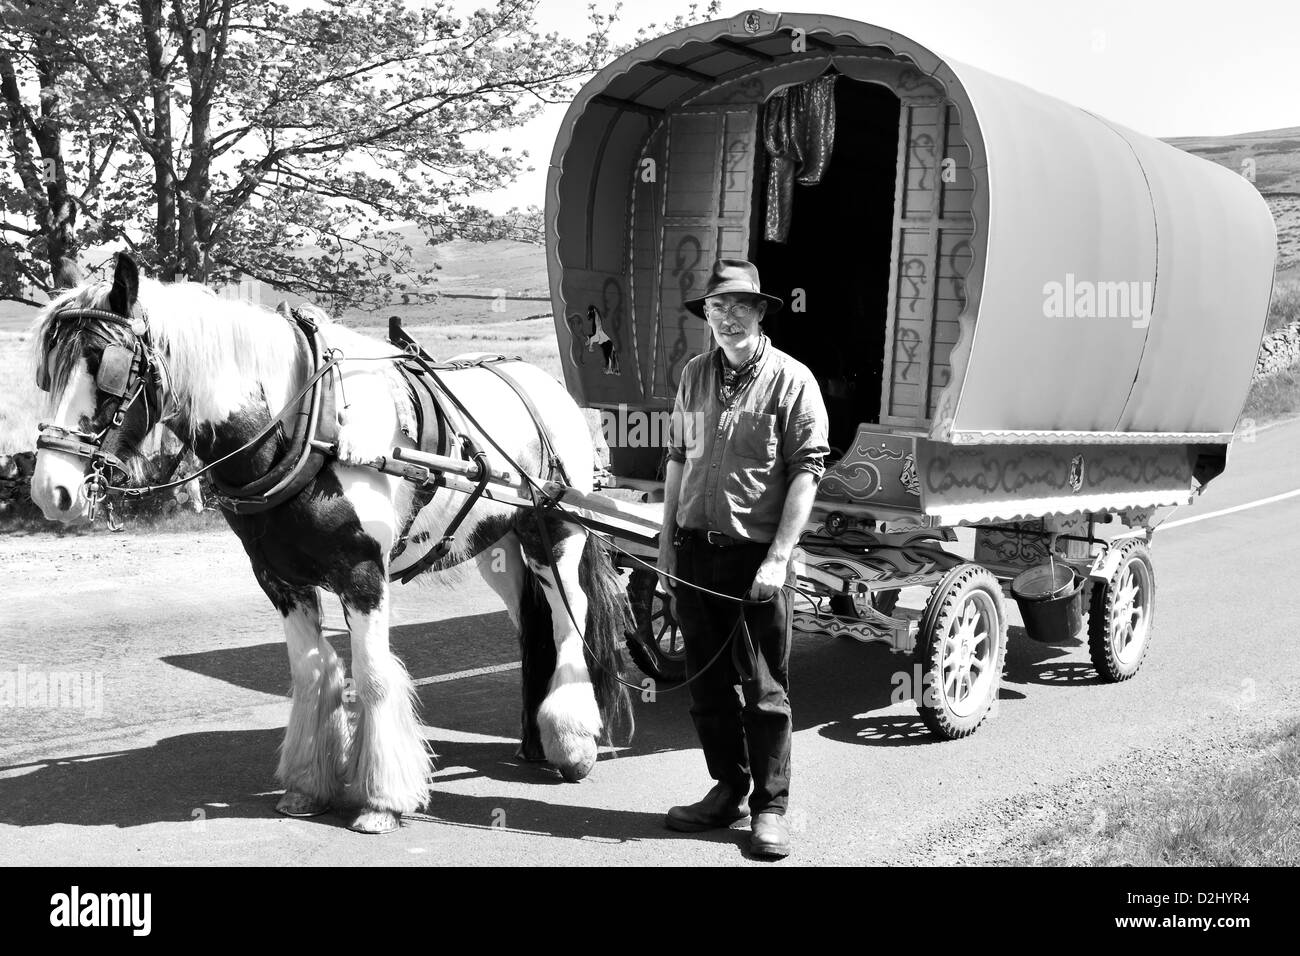 Traveller en-route to the Appleby Horse Fair, Garsdale Head, Yorkshire, England - Stock Image